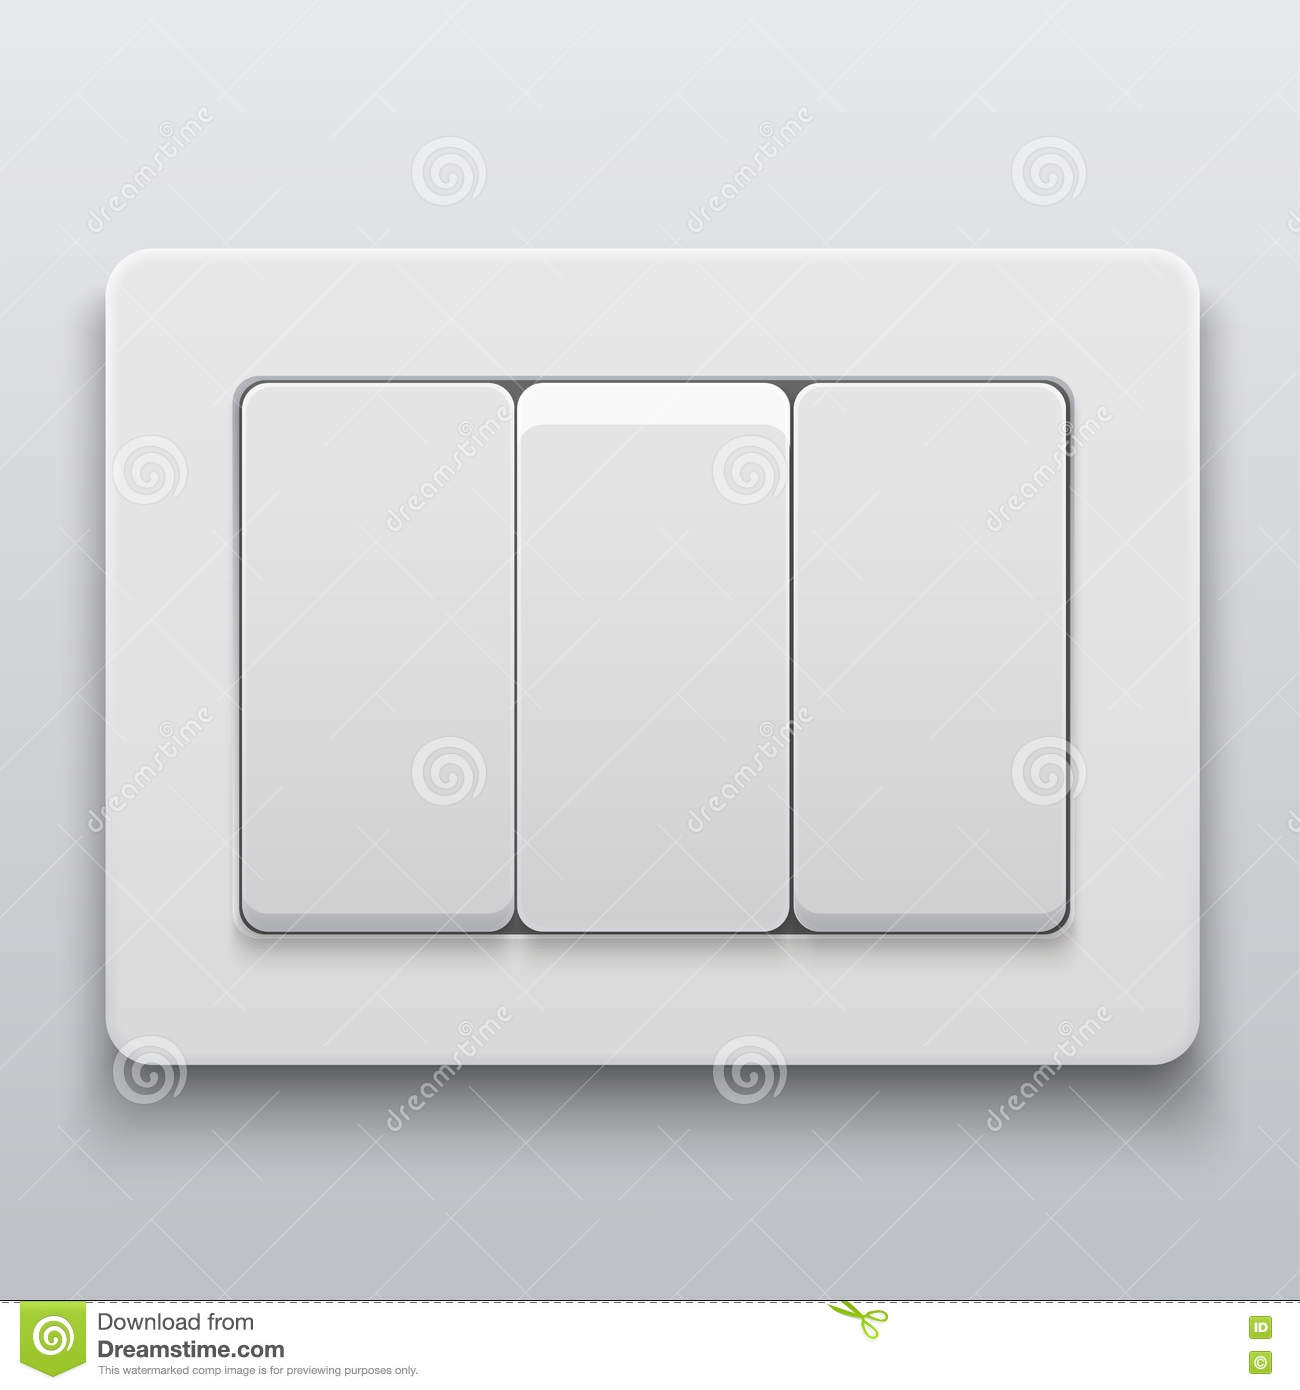 Vector Modern Light Switch Icon Background Stock Vector ...